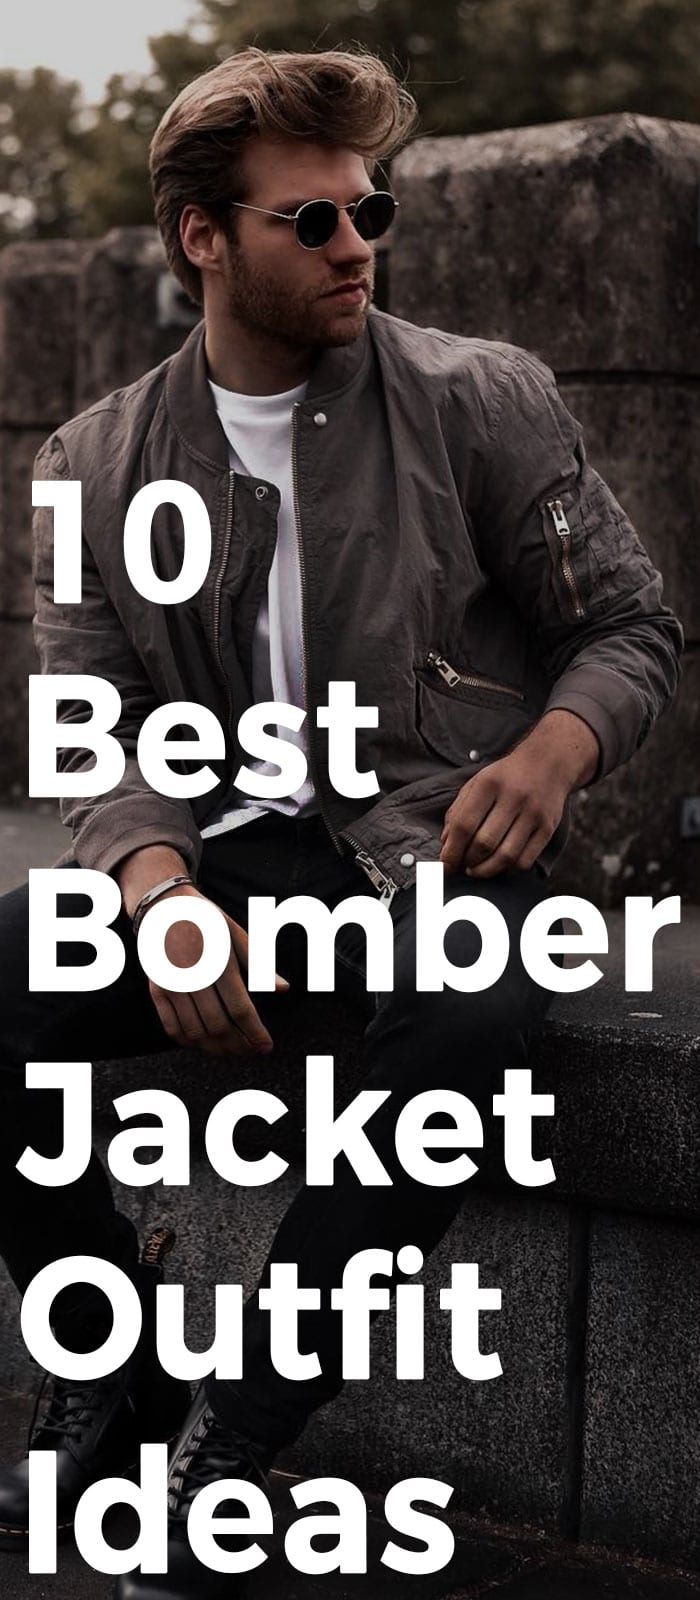 10 Best Bomber Jacket Outfit Ideas